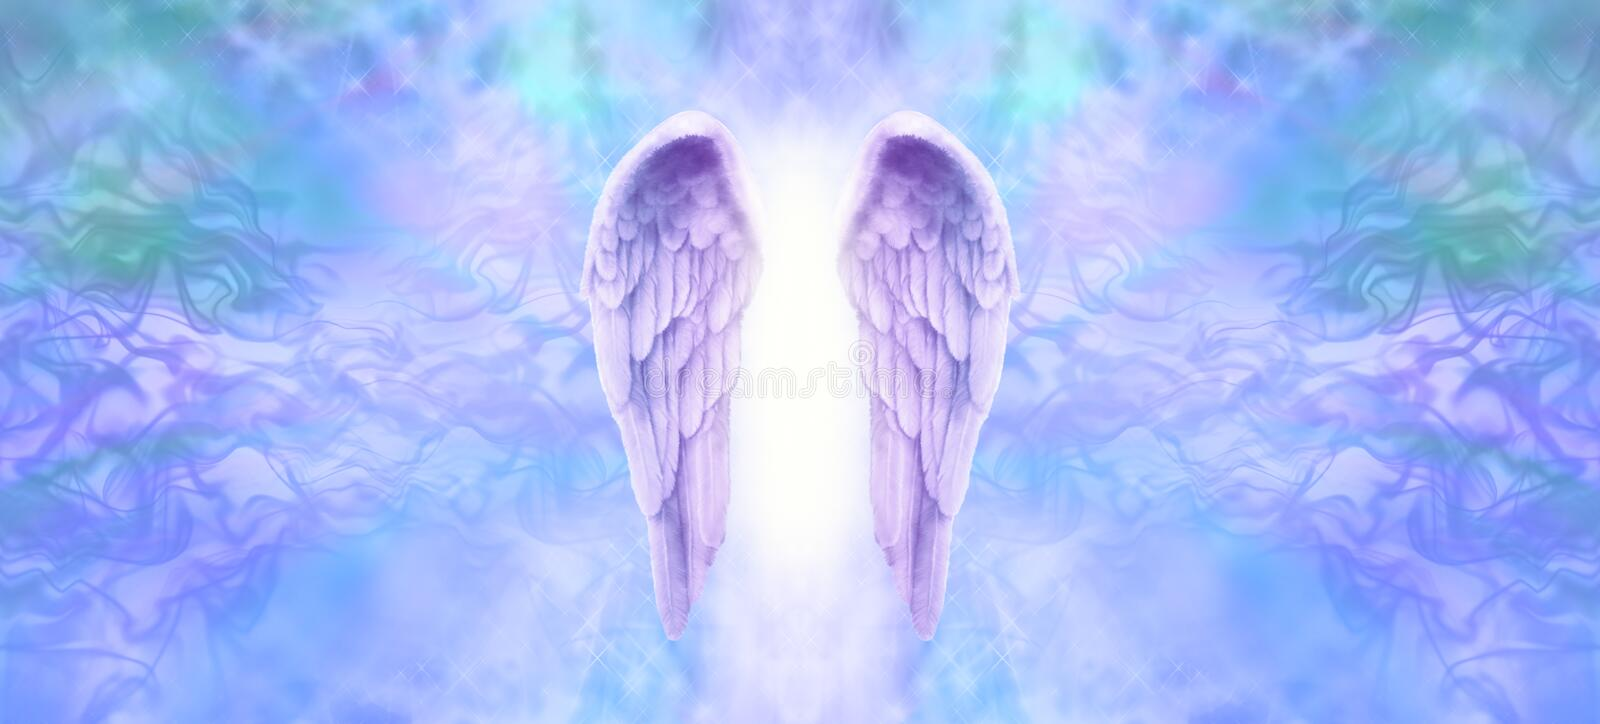 Angel Wings Banner lilas illustration de vecteur